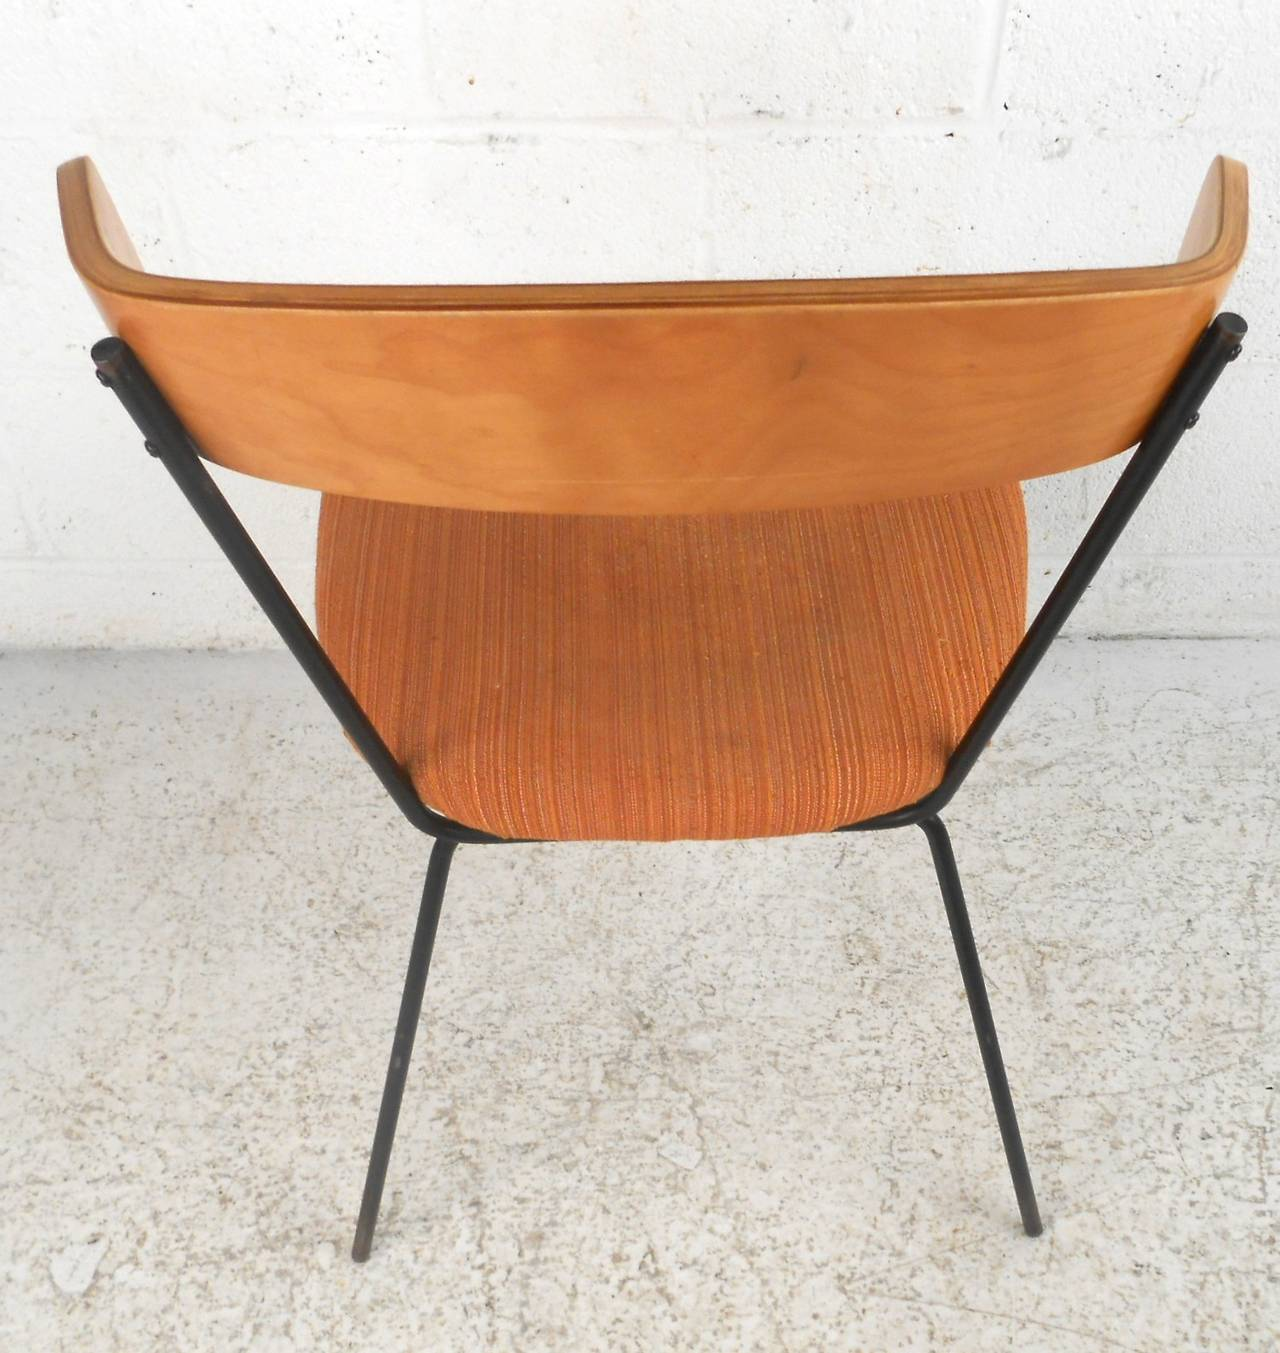 bent wood dining chairs swing chair holder mid century modern paul mccobb 1535 style bentwood